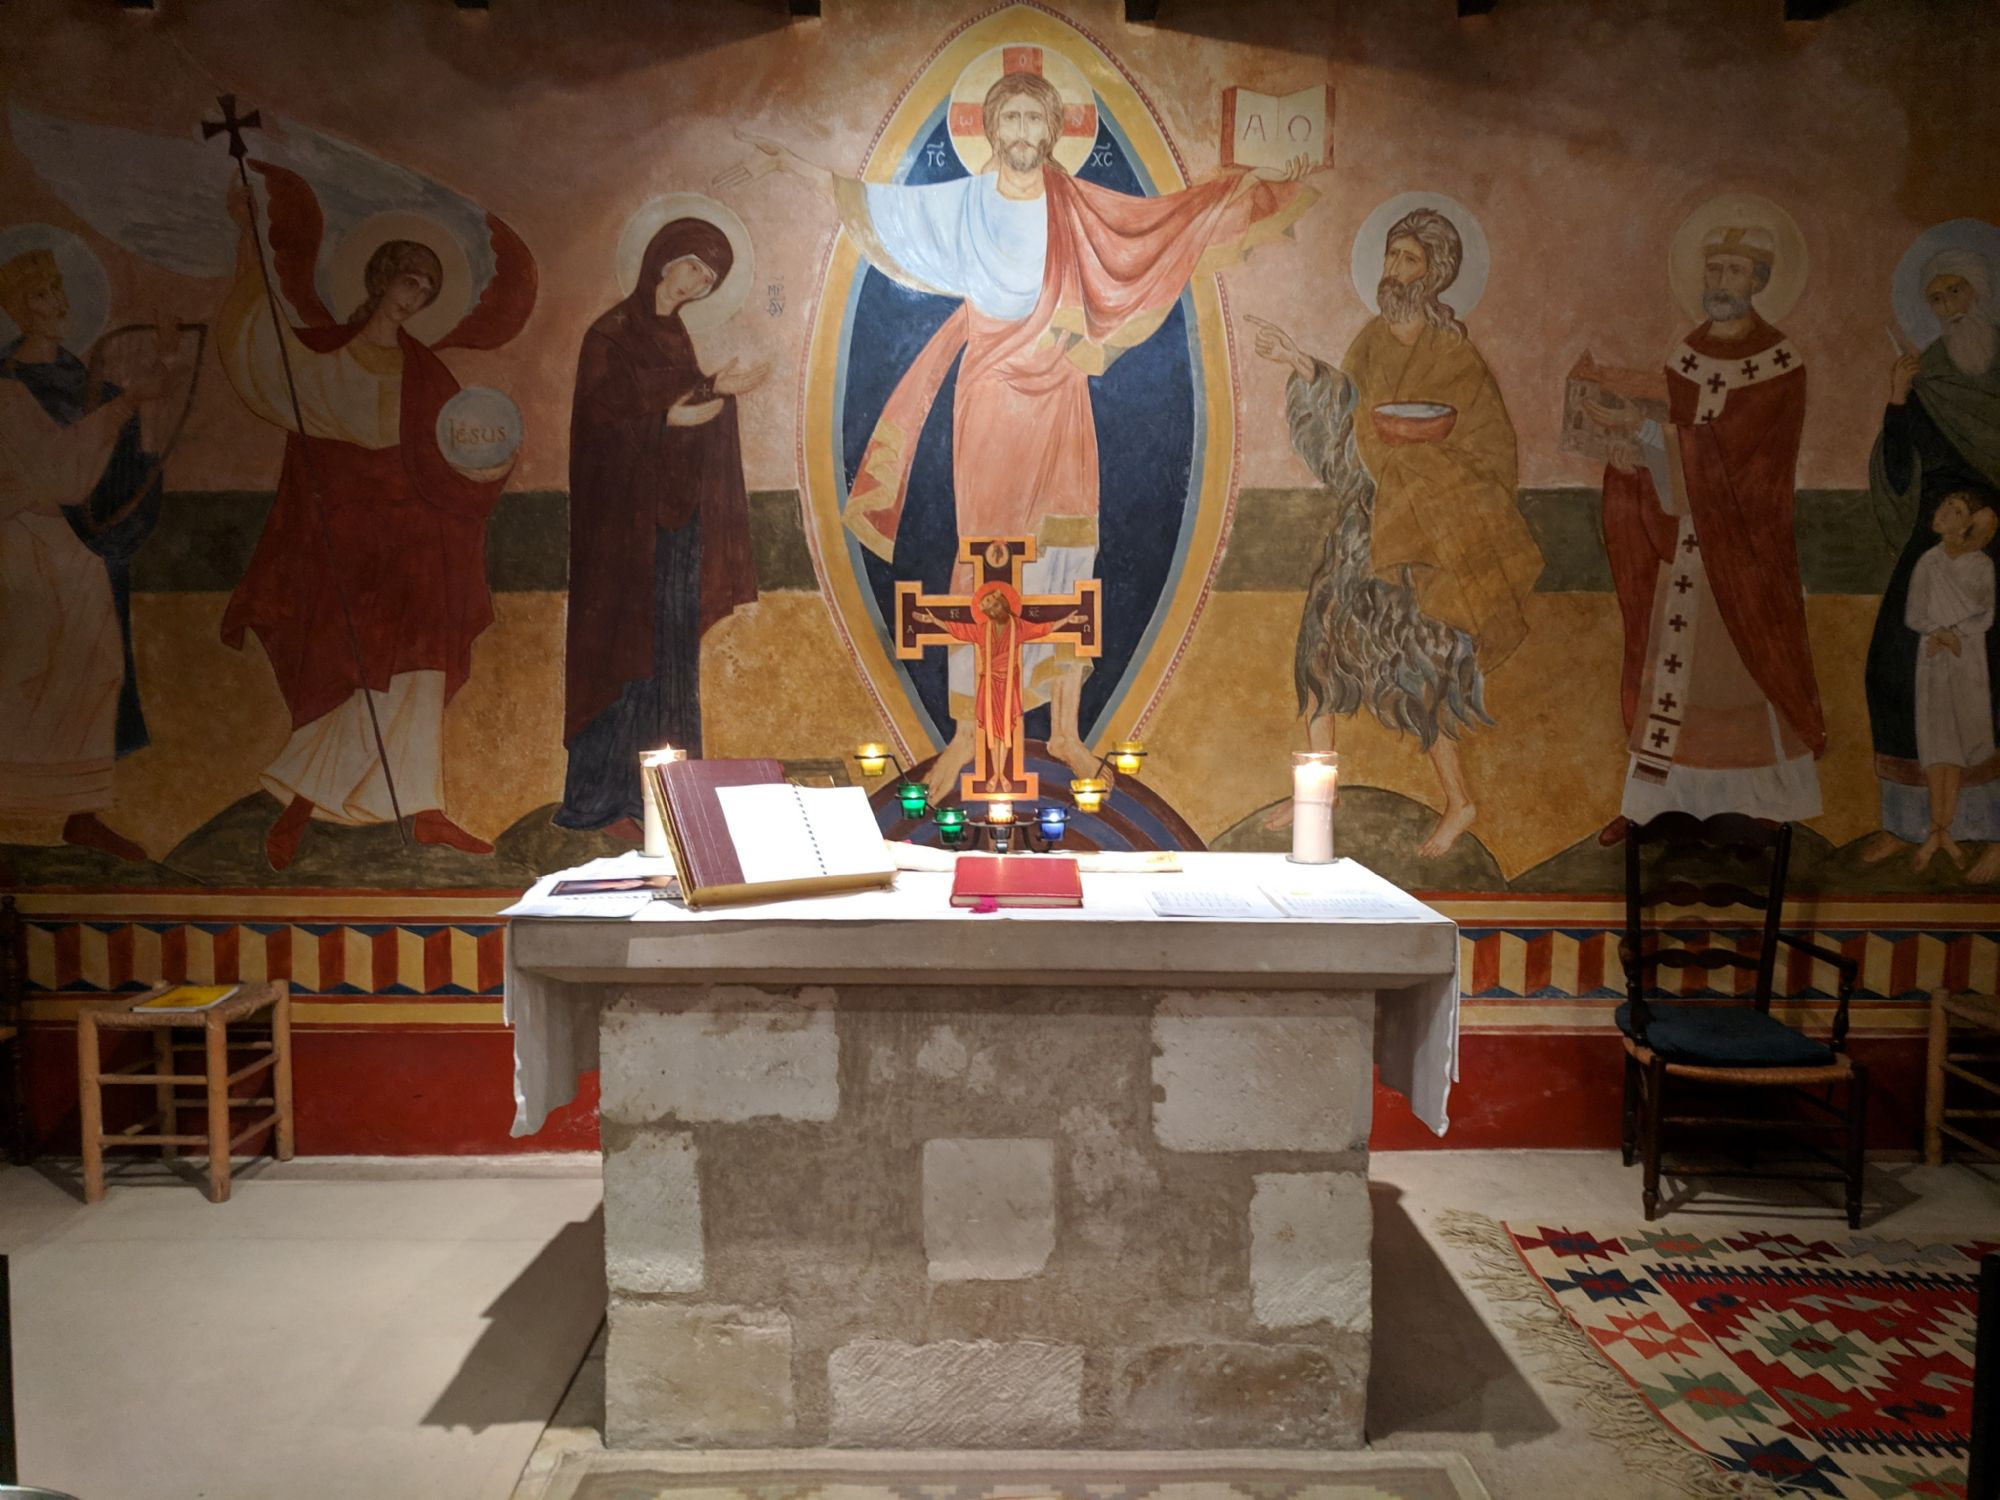 The Altar at Bishop Gregory's monastery